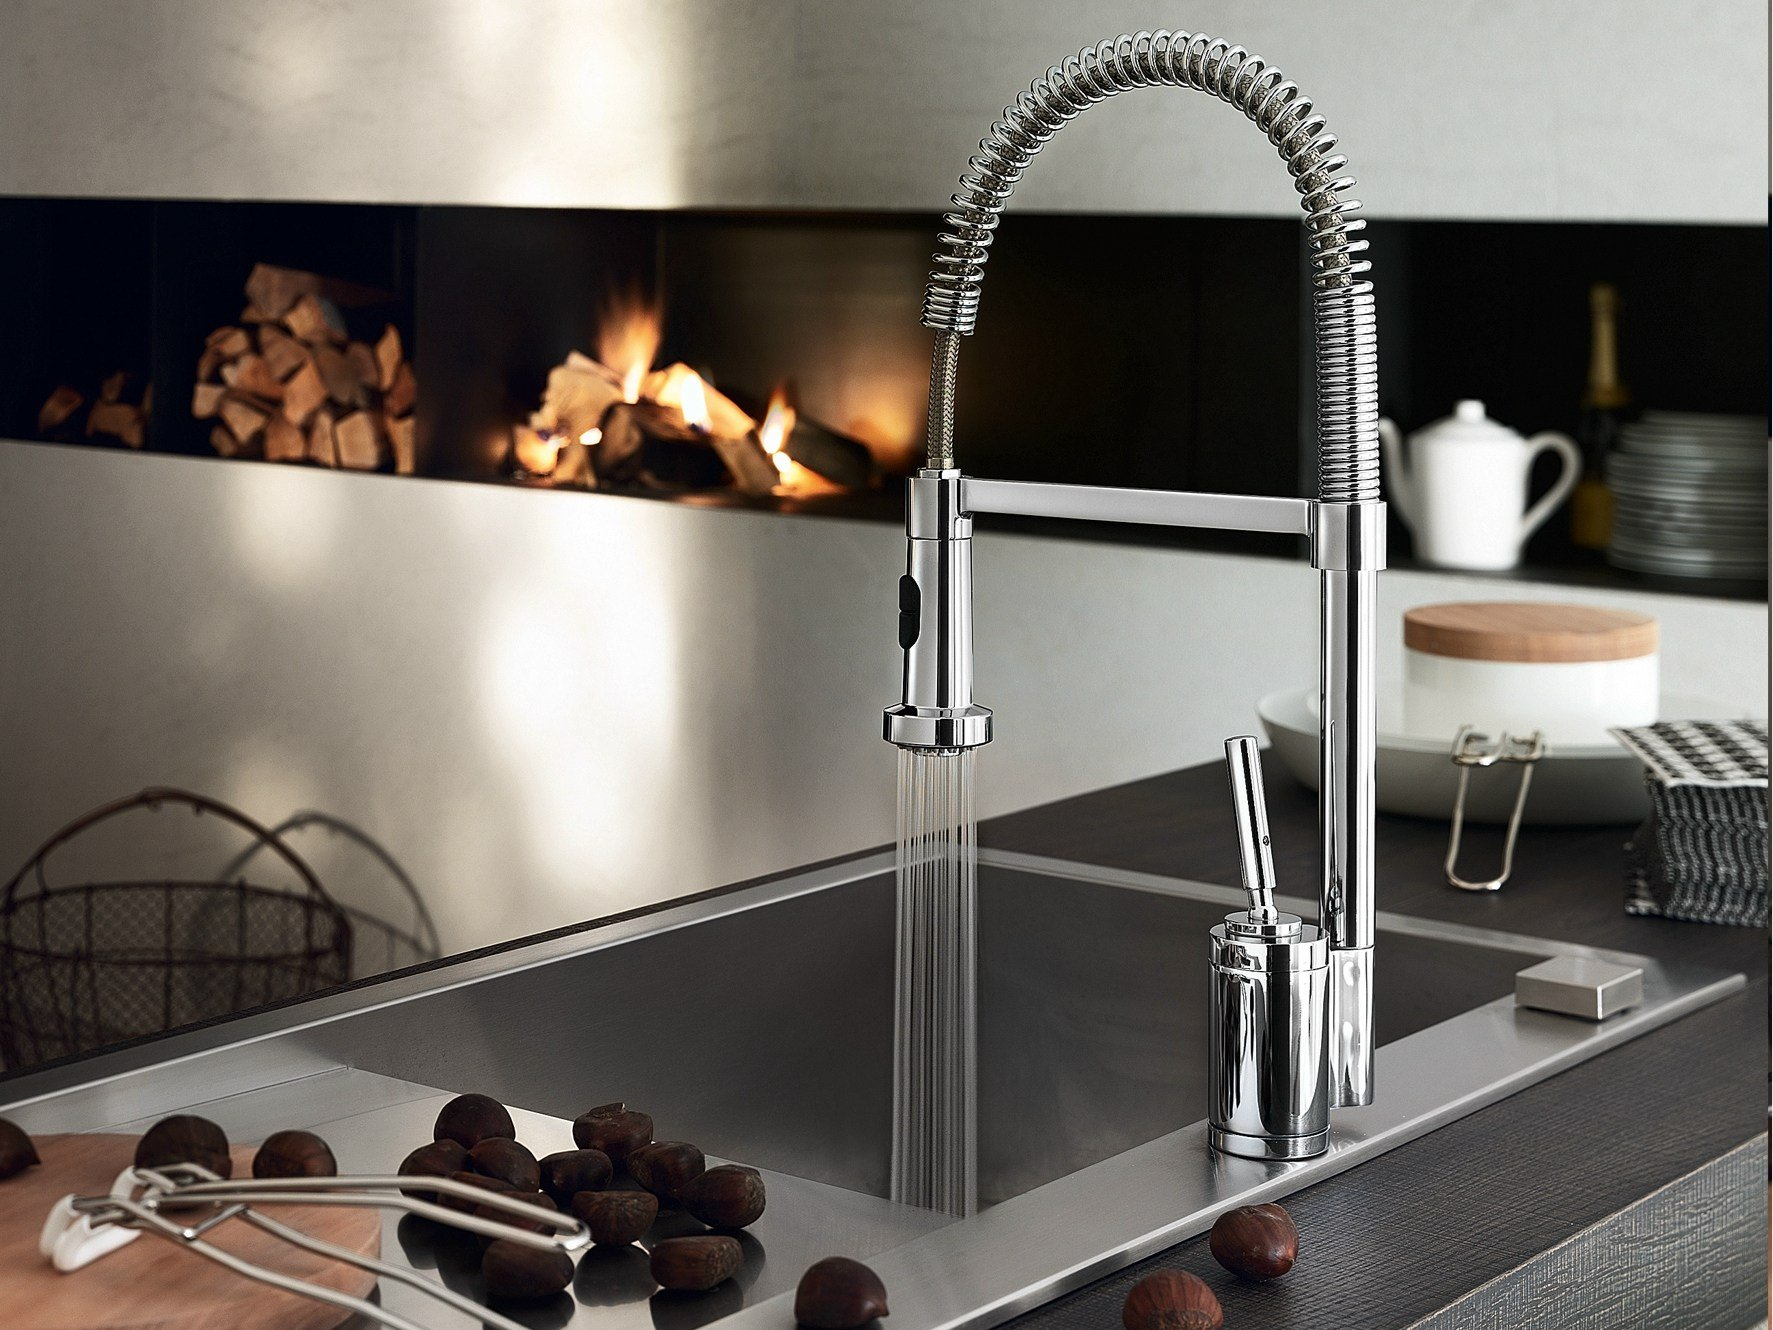 billy kitchen mixer tap by carlo nobili rubinetterie. Black Bedroom Furniture Sets. Home Design Ideas